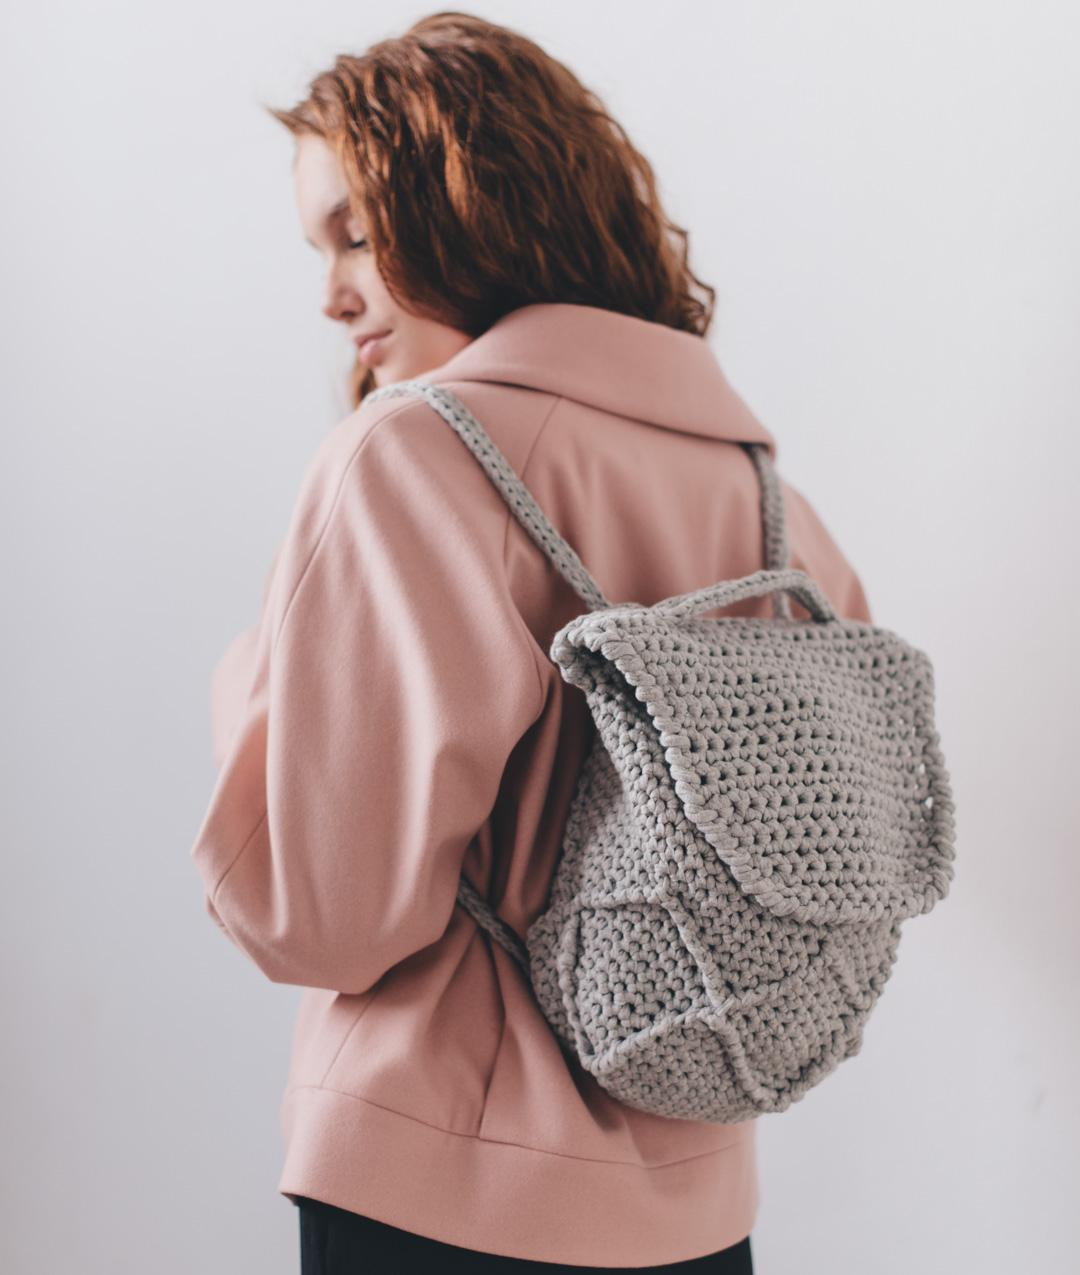 HANDBAGS & CLUTHES - Bags  - DIAMOND BACKPACK - 1